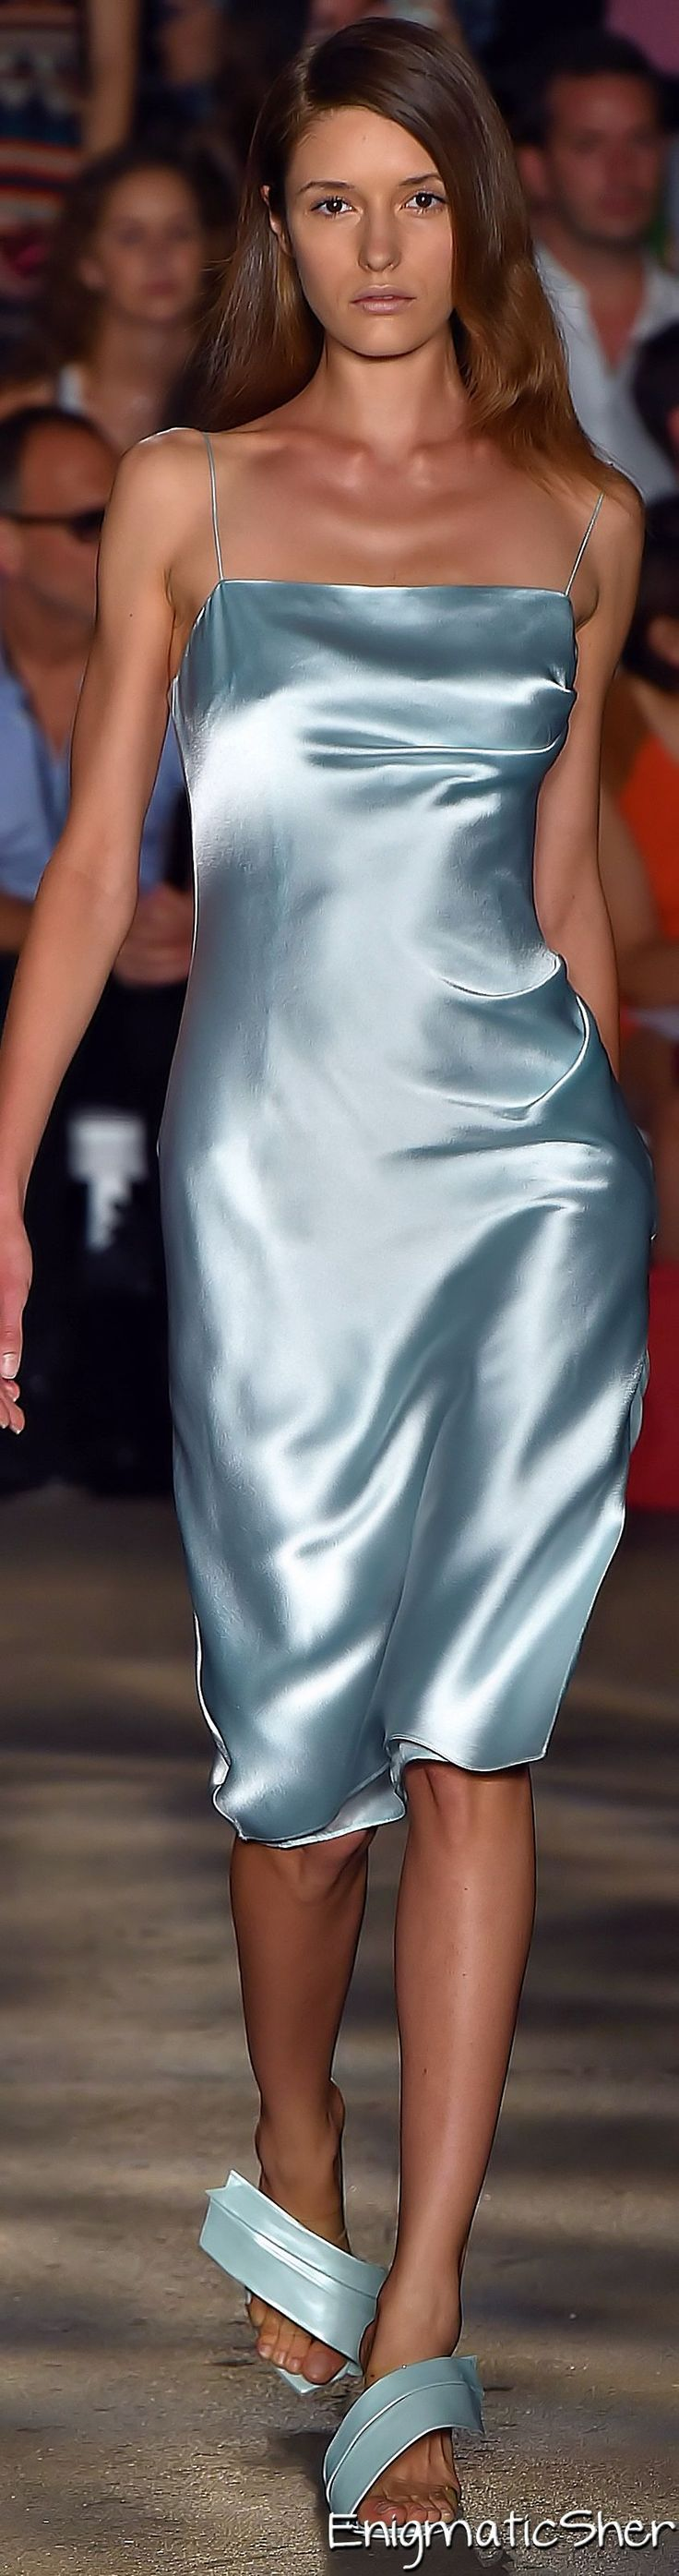 Christian Siriano Spring Summer 2015 RTW - An interesting trend, viewing foundation garments as actual garments that you would wear without trying to cover them up. Almost a new provocative trend. Definitely with a garment like this, it is important to have the right foundation garments on to avoid unwanted lines or the dreaded 'muffin top'.